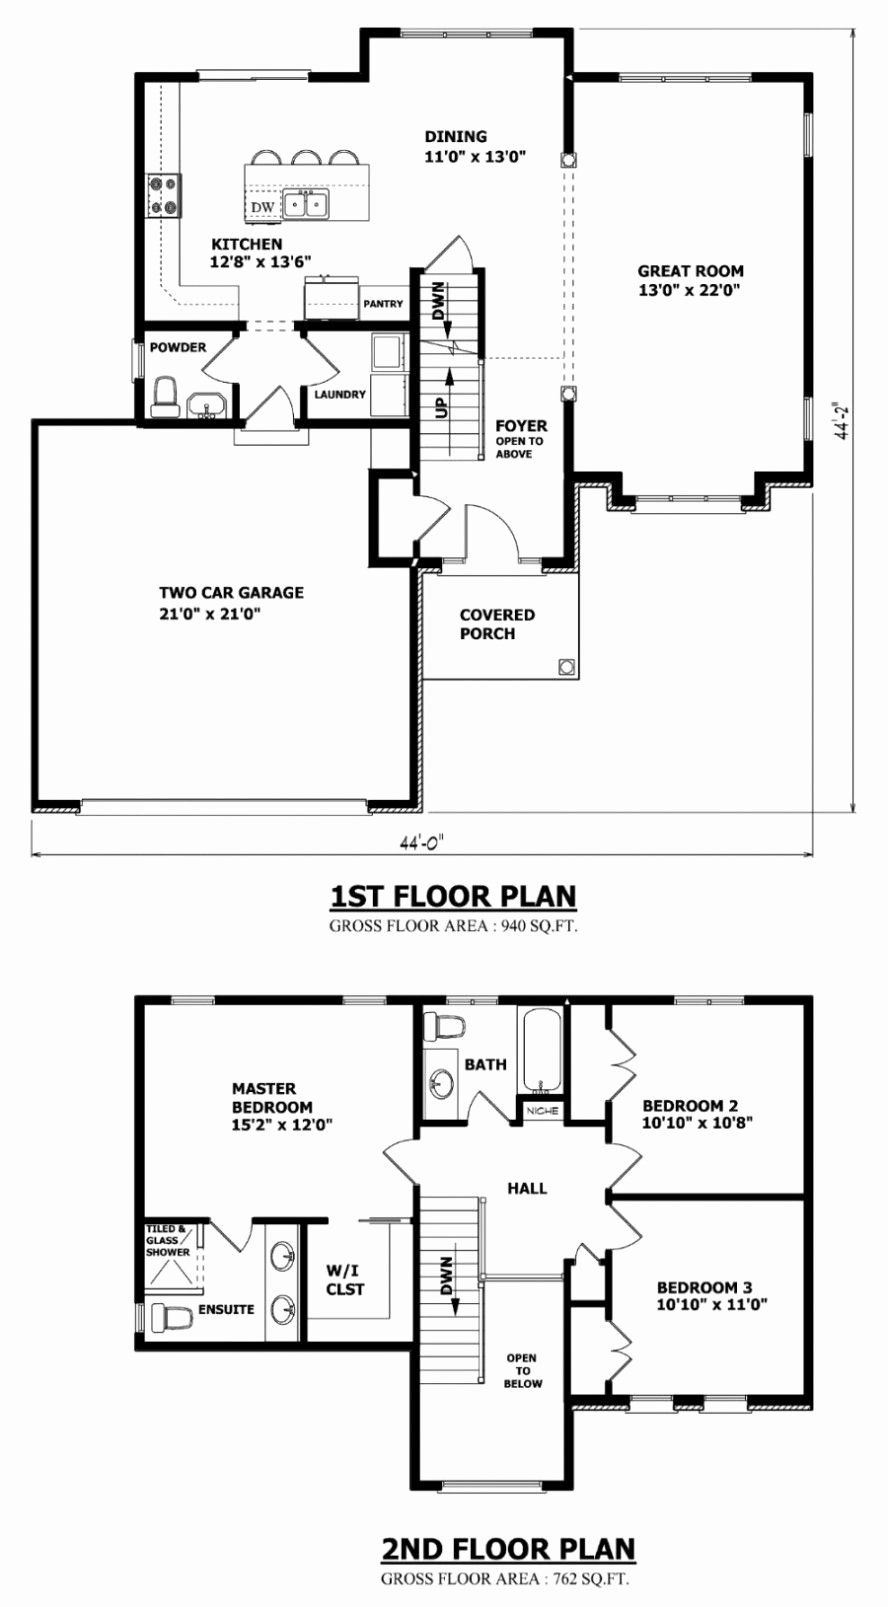 Basic Two Story House Plans Awesome Two Storey House Floor Plan A Small Contemporary House In Two Storey House Plans Two Story House Plans Garage House Plans